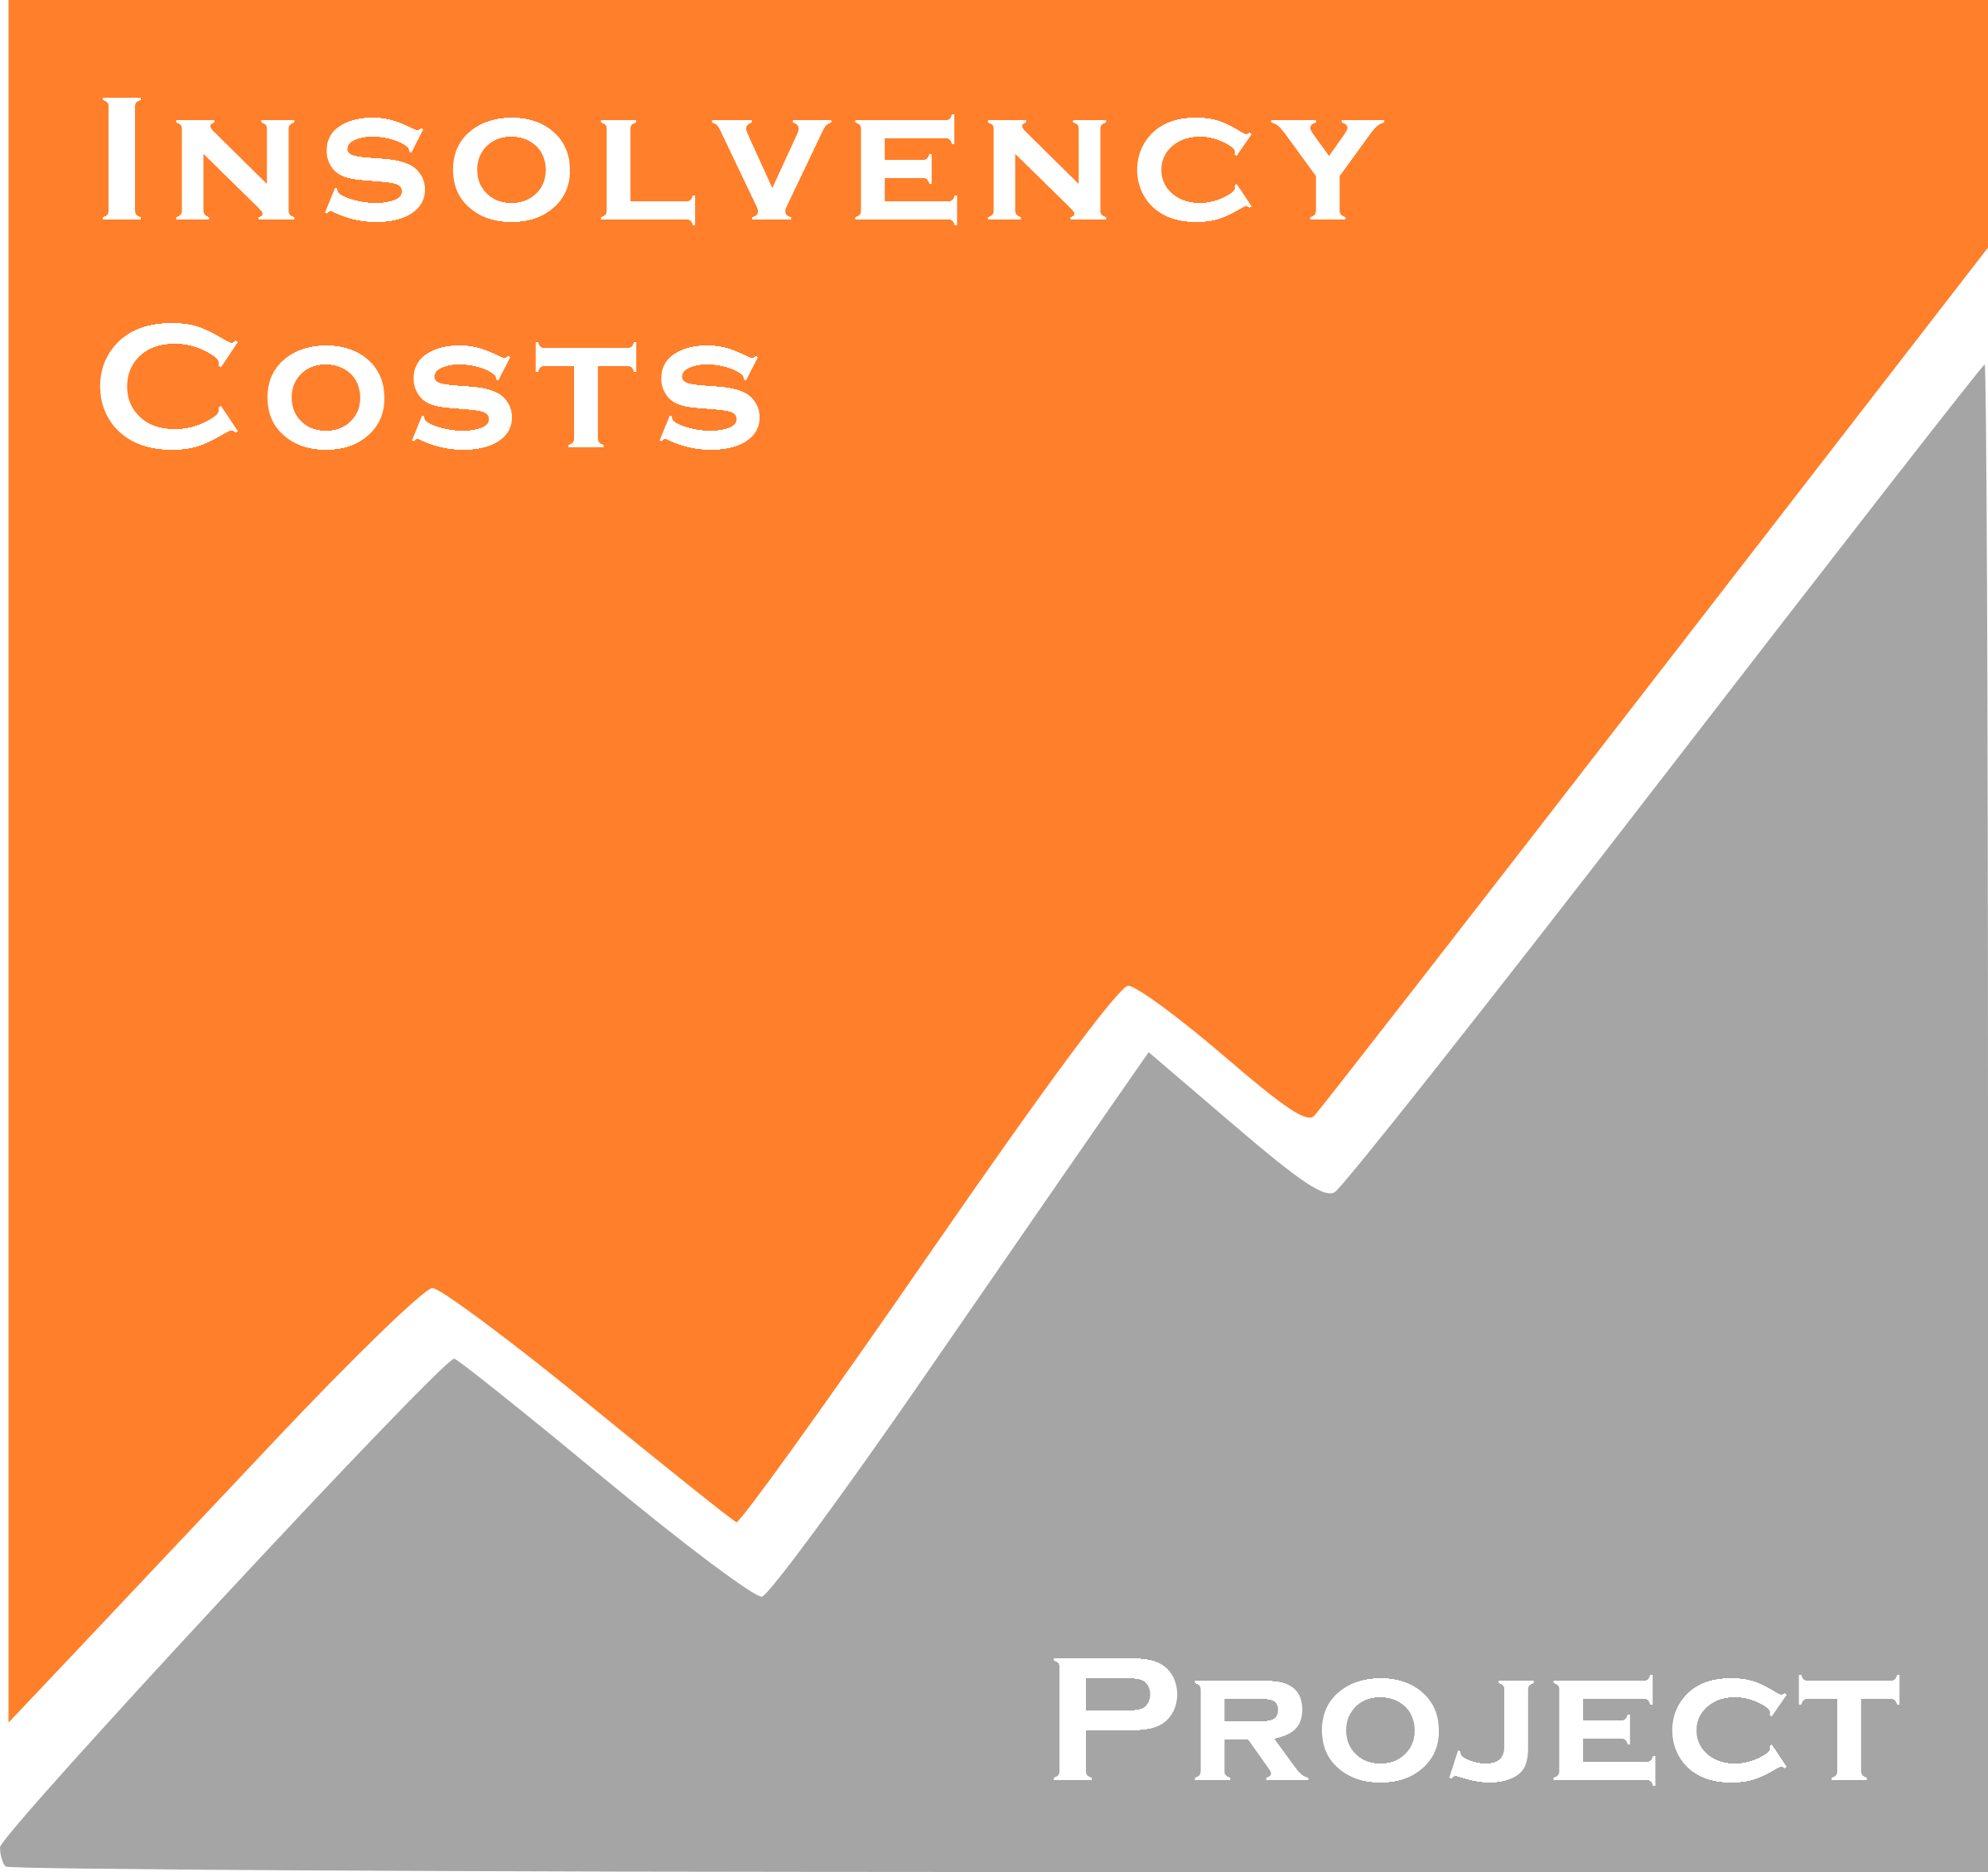 Insolvency-costs-project-logo-3